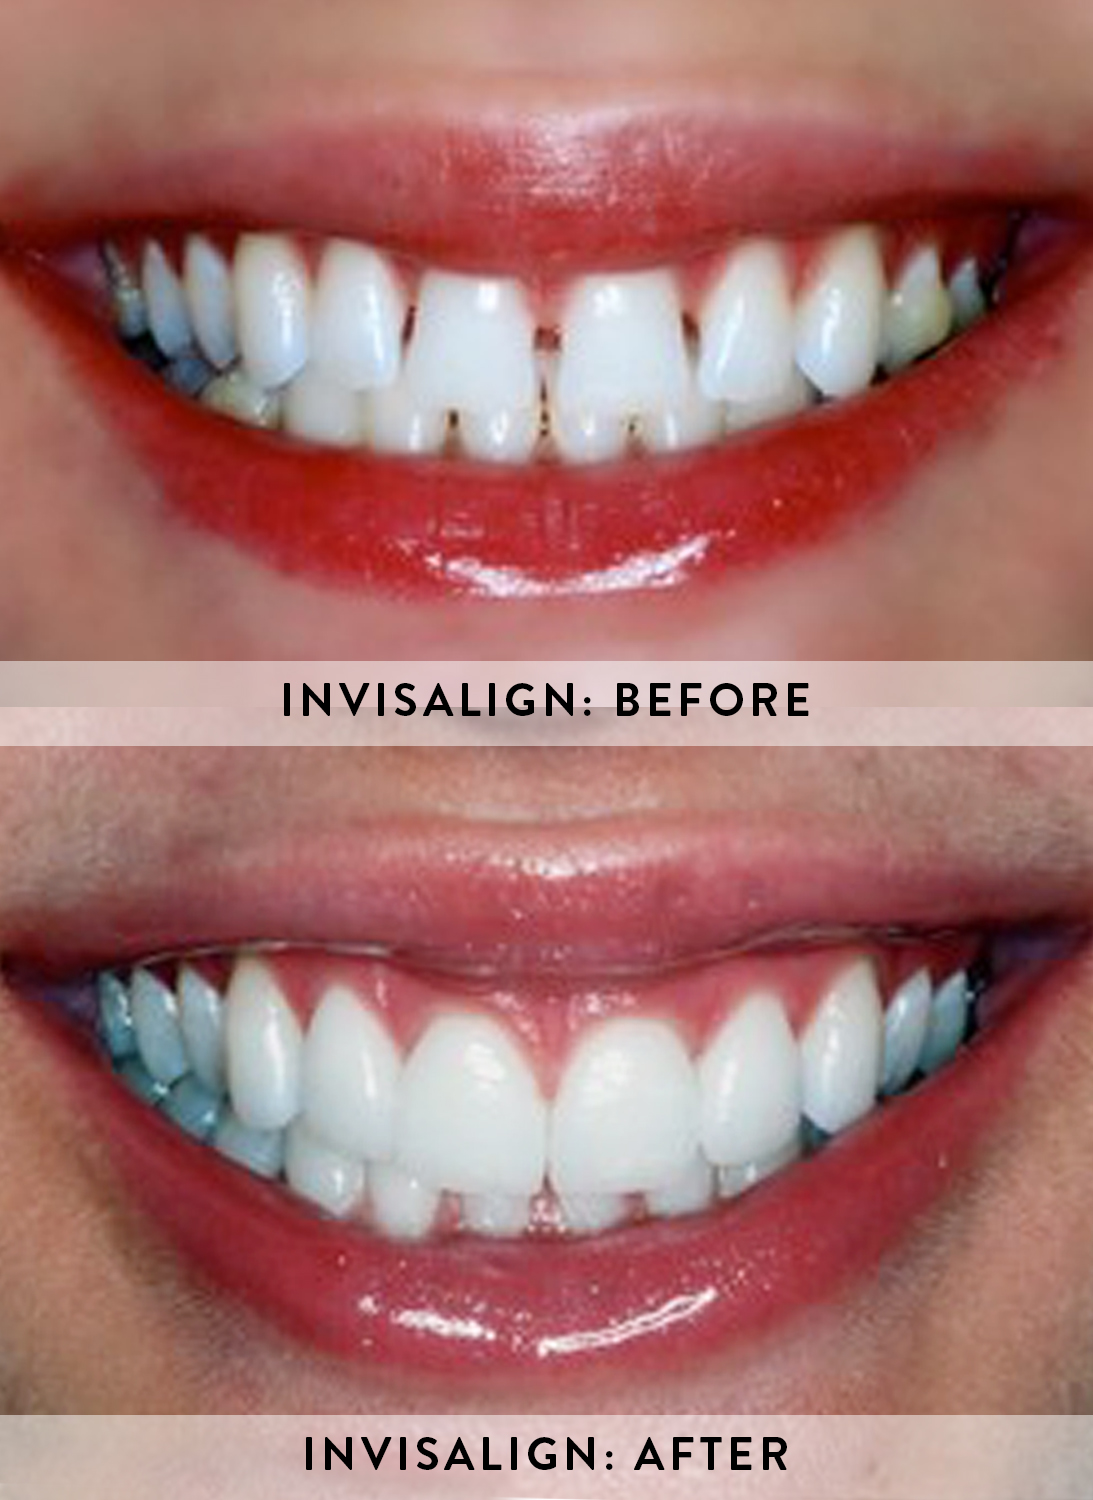 INVISALIGN 2- BEFORE & AFTER.jpg